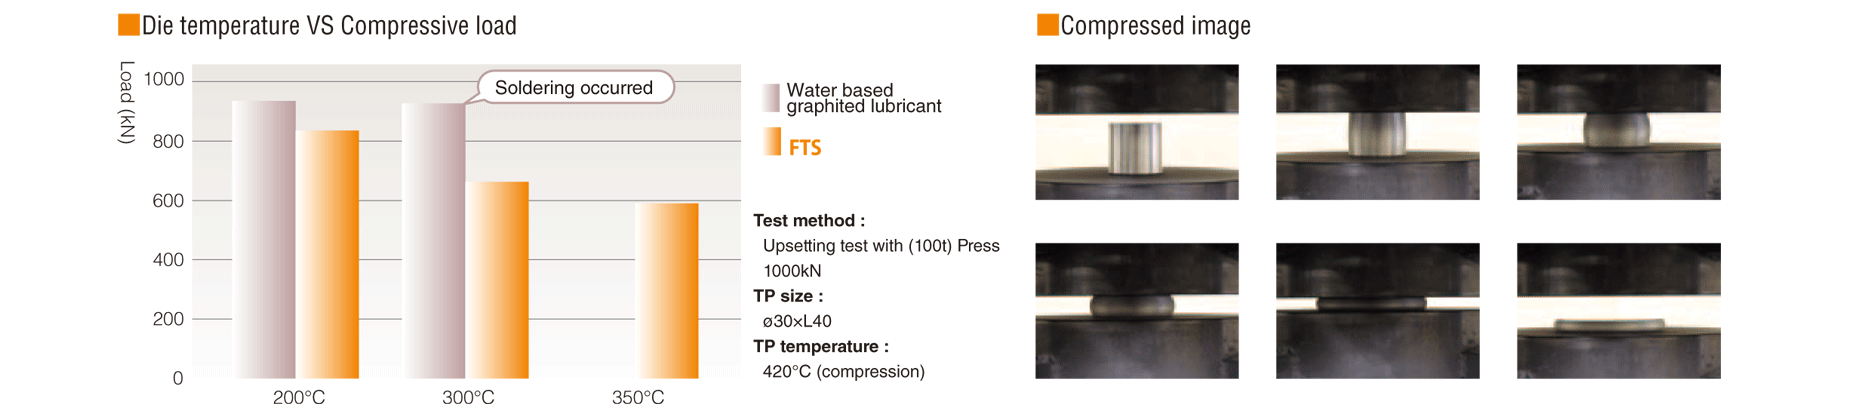 Die temperature VS Compressive load